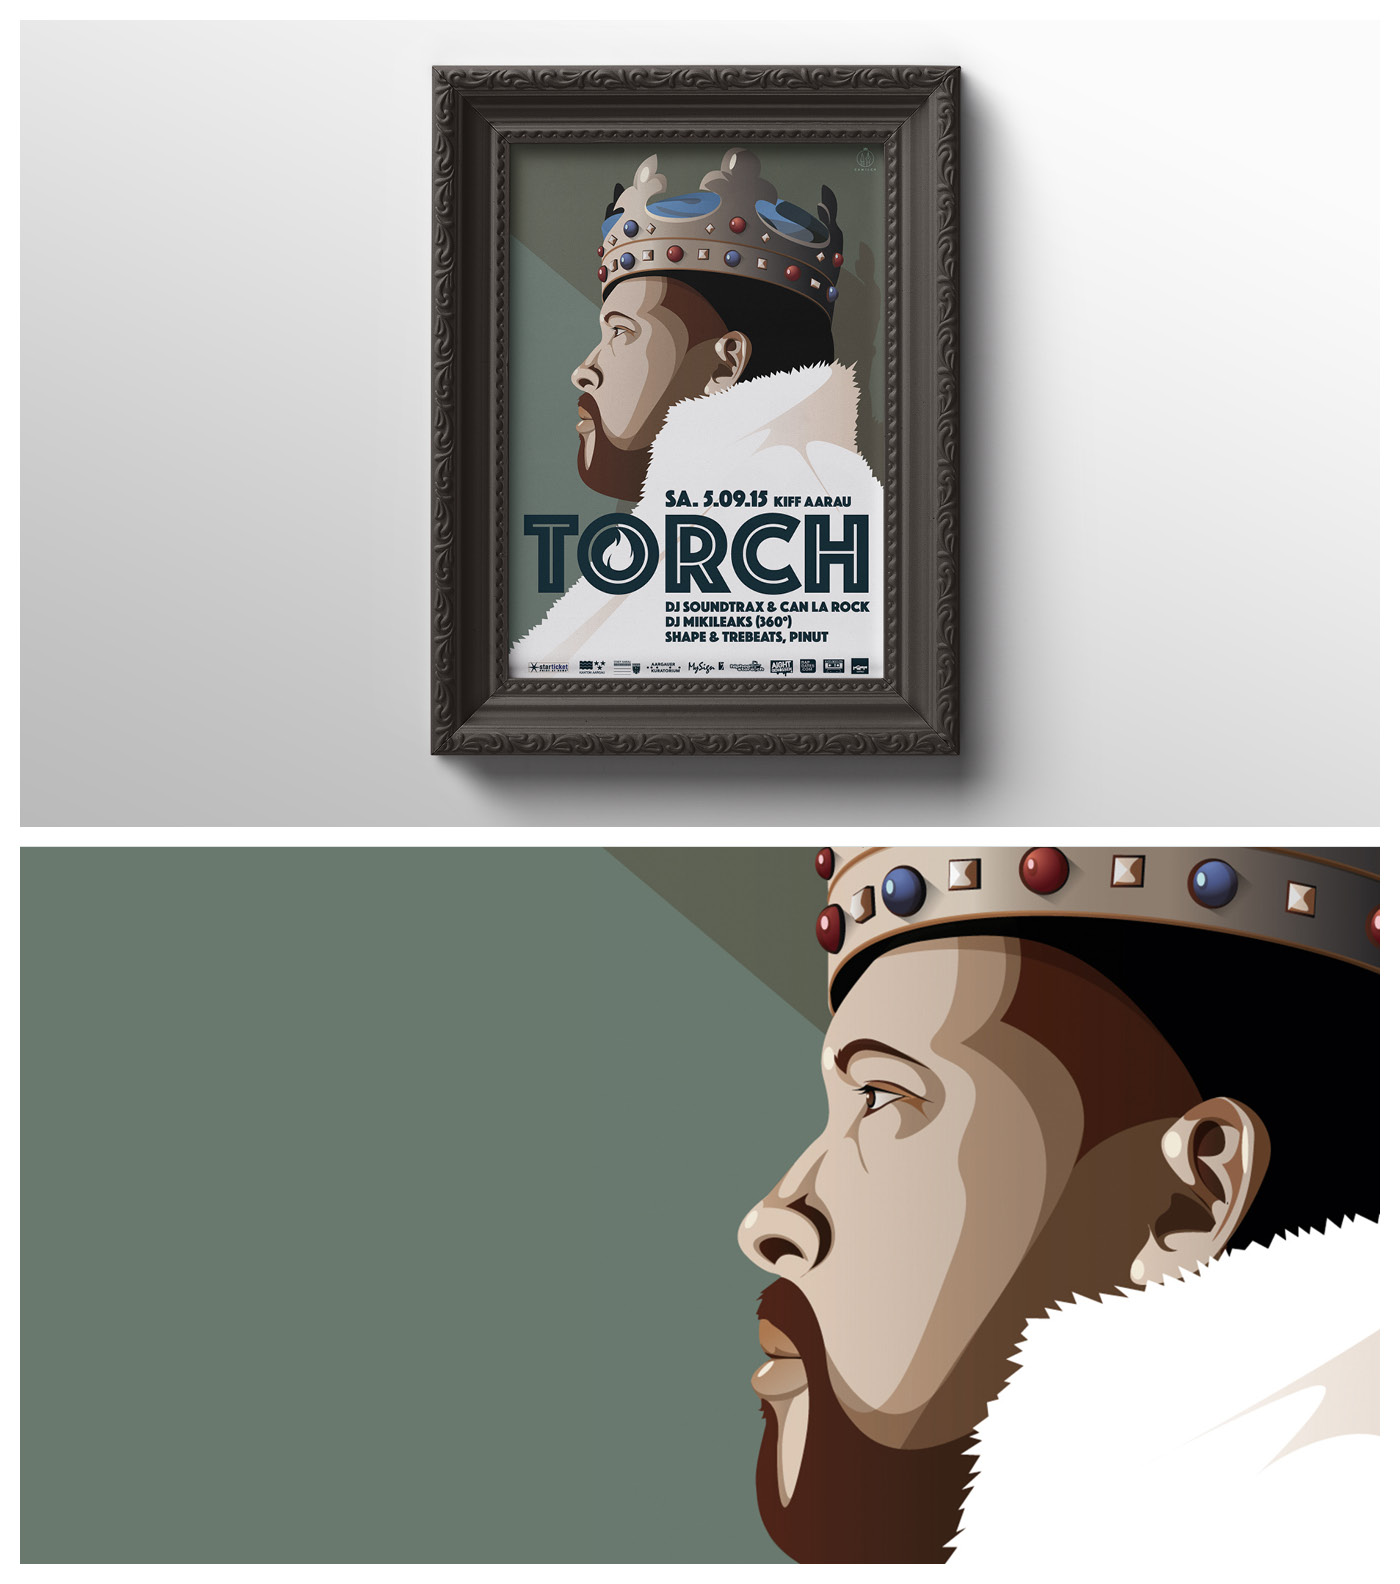 poster for torch concert rap german